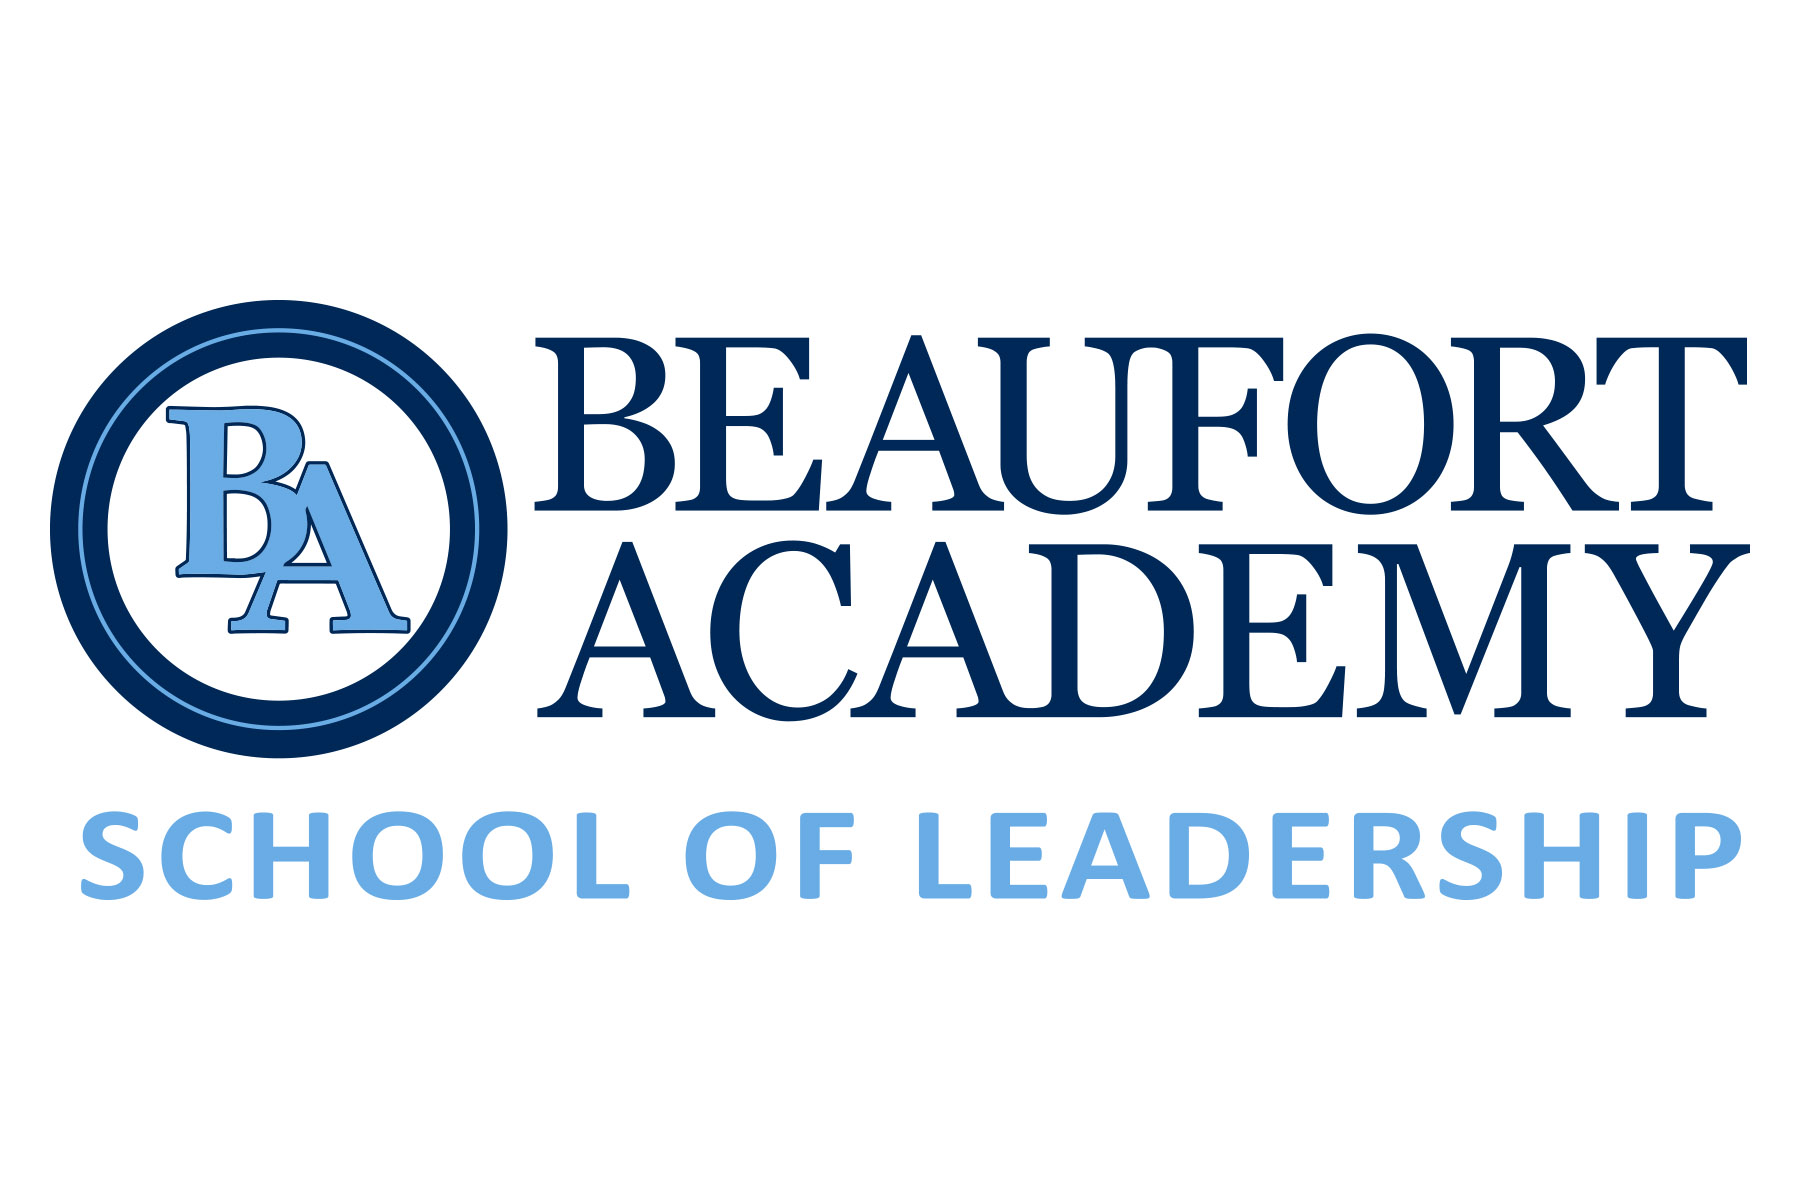 Logo Design for Beaufort Academy School of Leadership